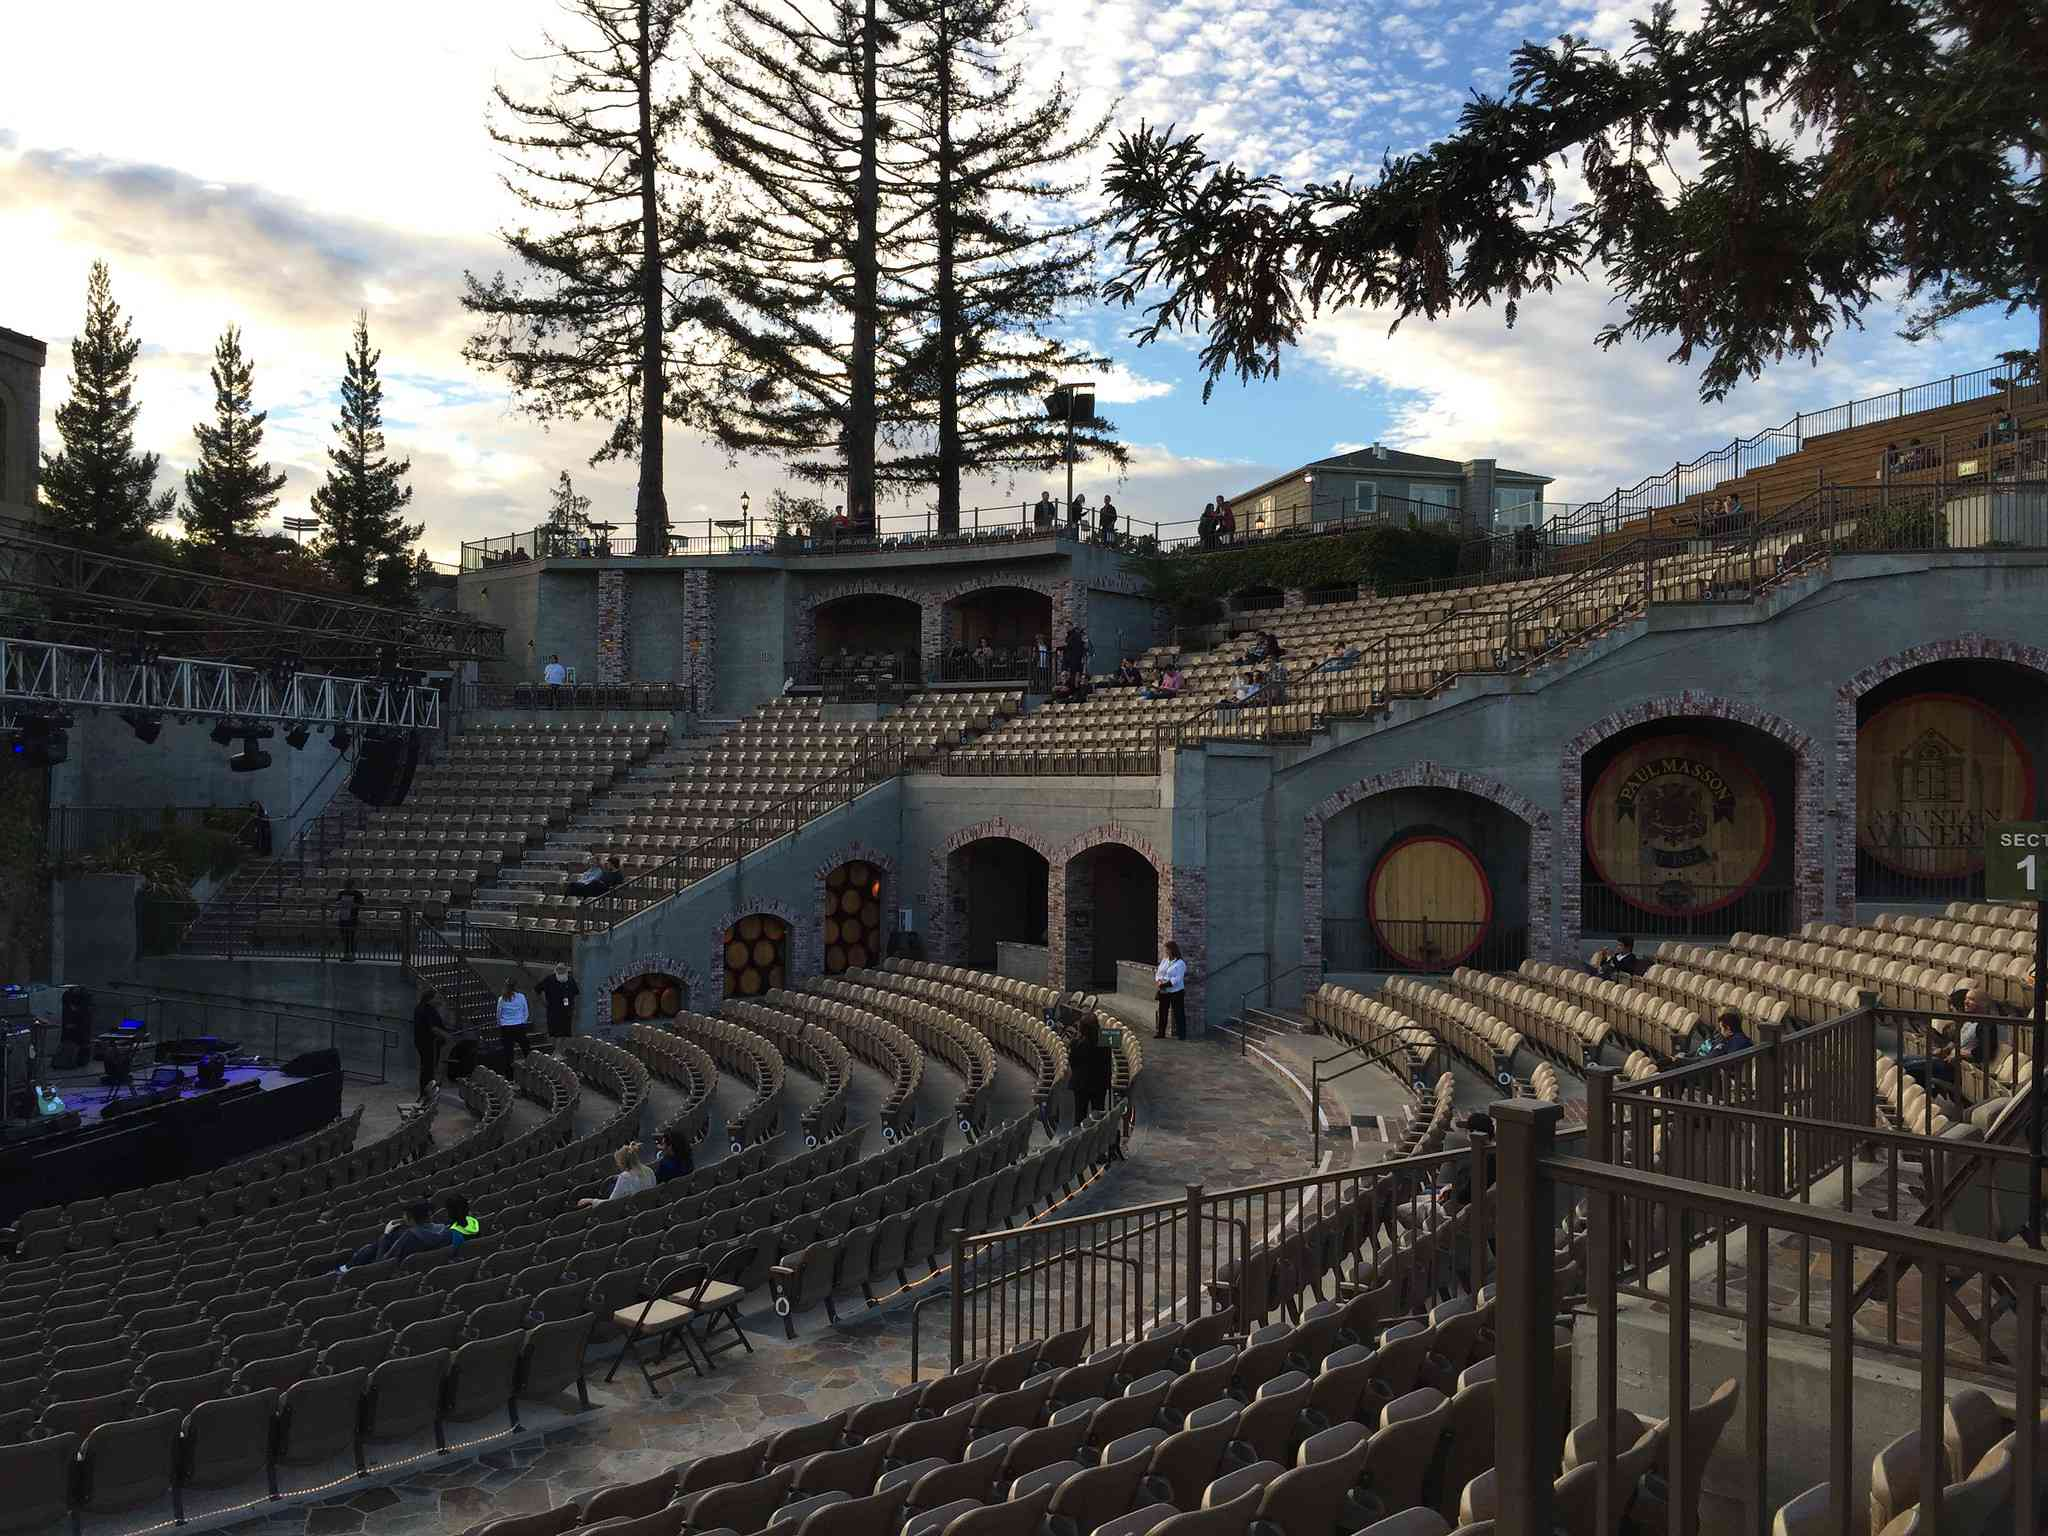 View of Mountain Winery with multi-level seating, historic buildings, and large pine trees with blue sky and white clouds above